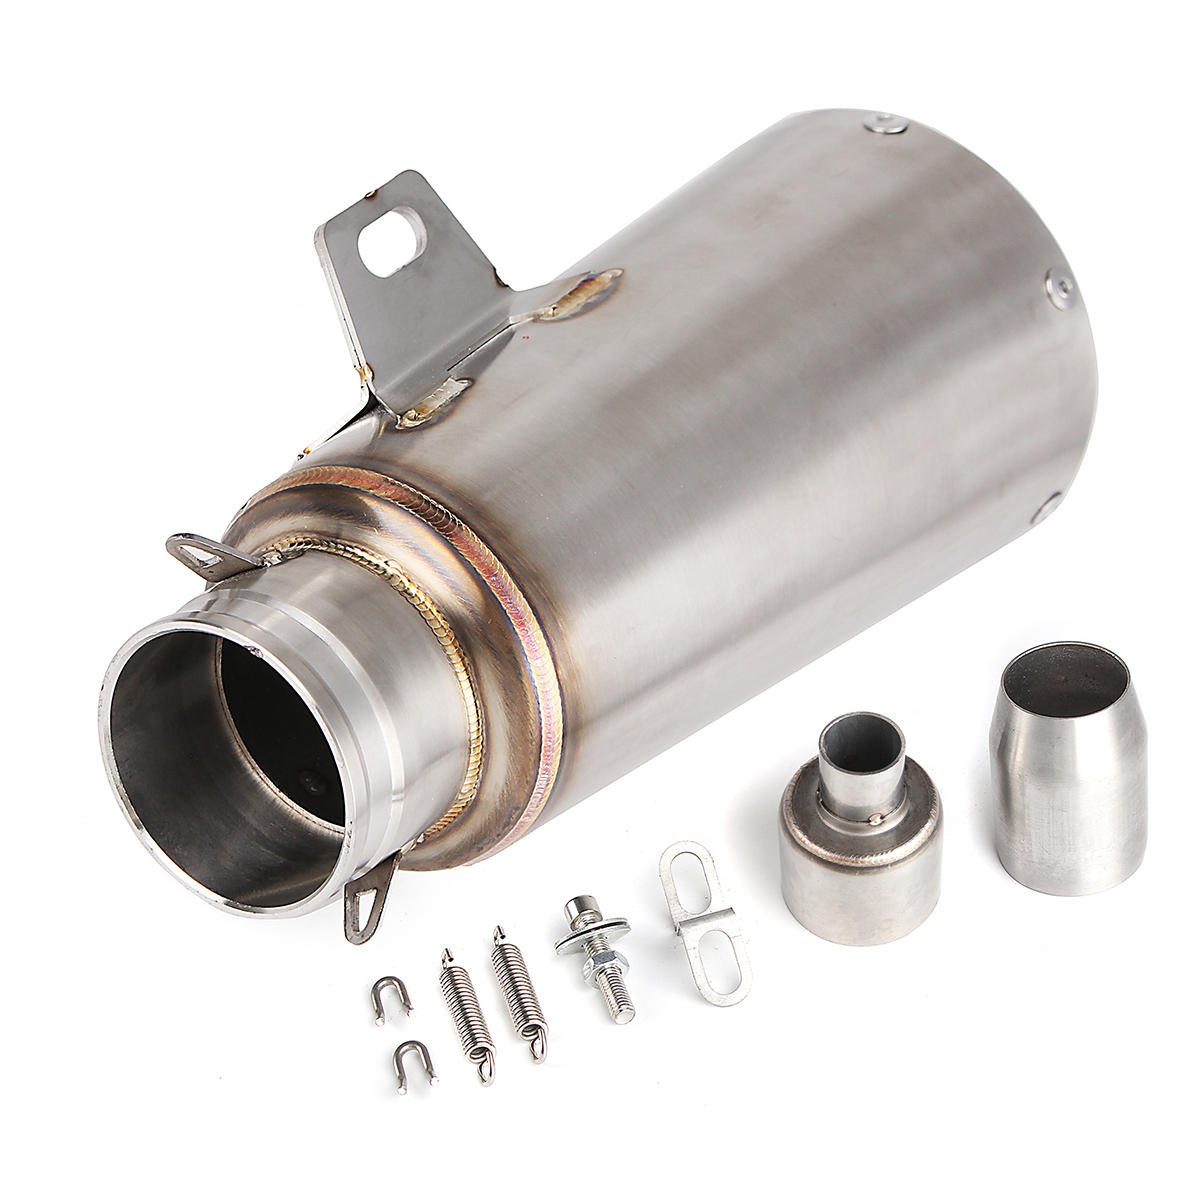 38-51mm Motorcycle Exhaust Muffler Pipe Silencer Slip-On Scooter Stainless Steel Back Pressure